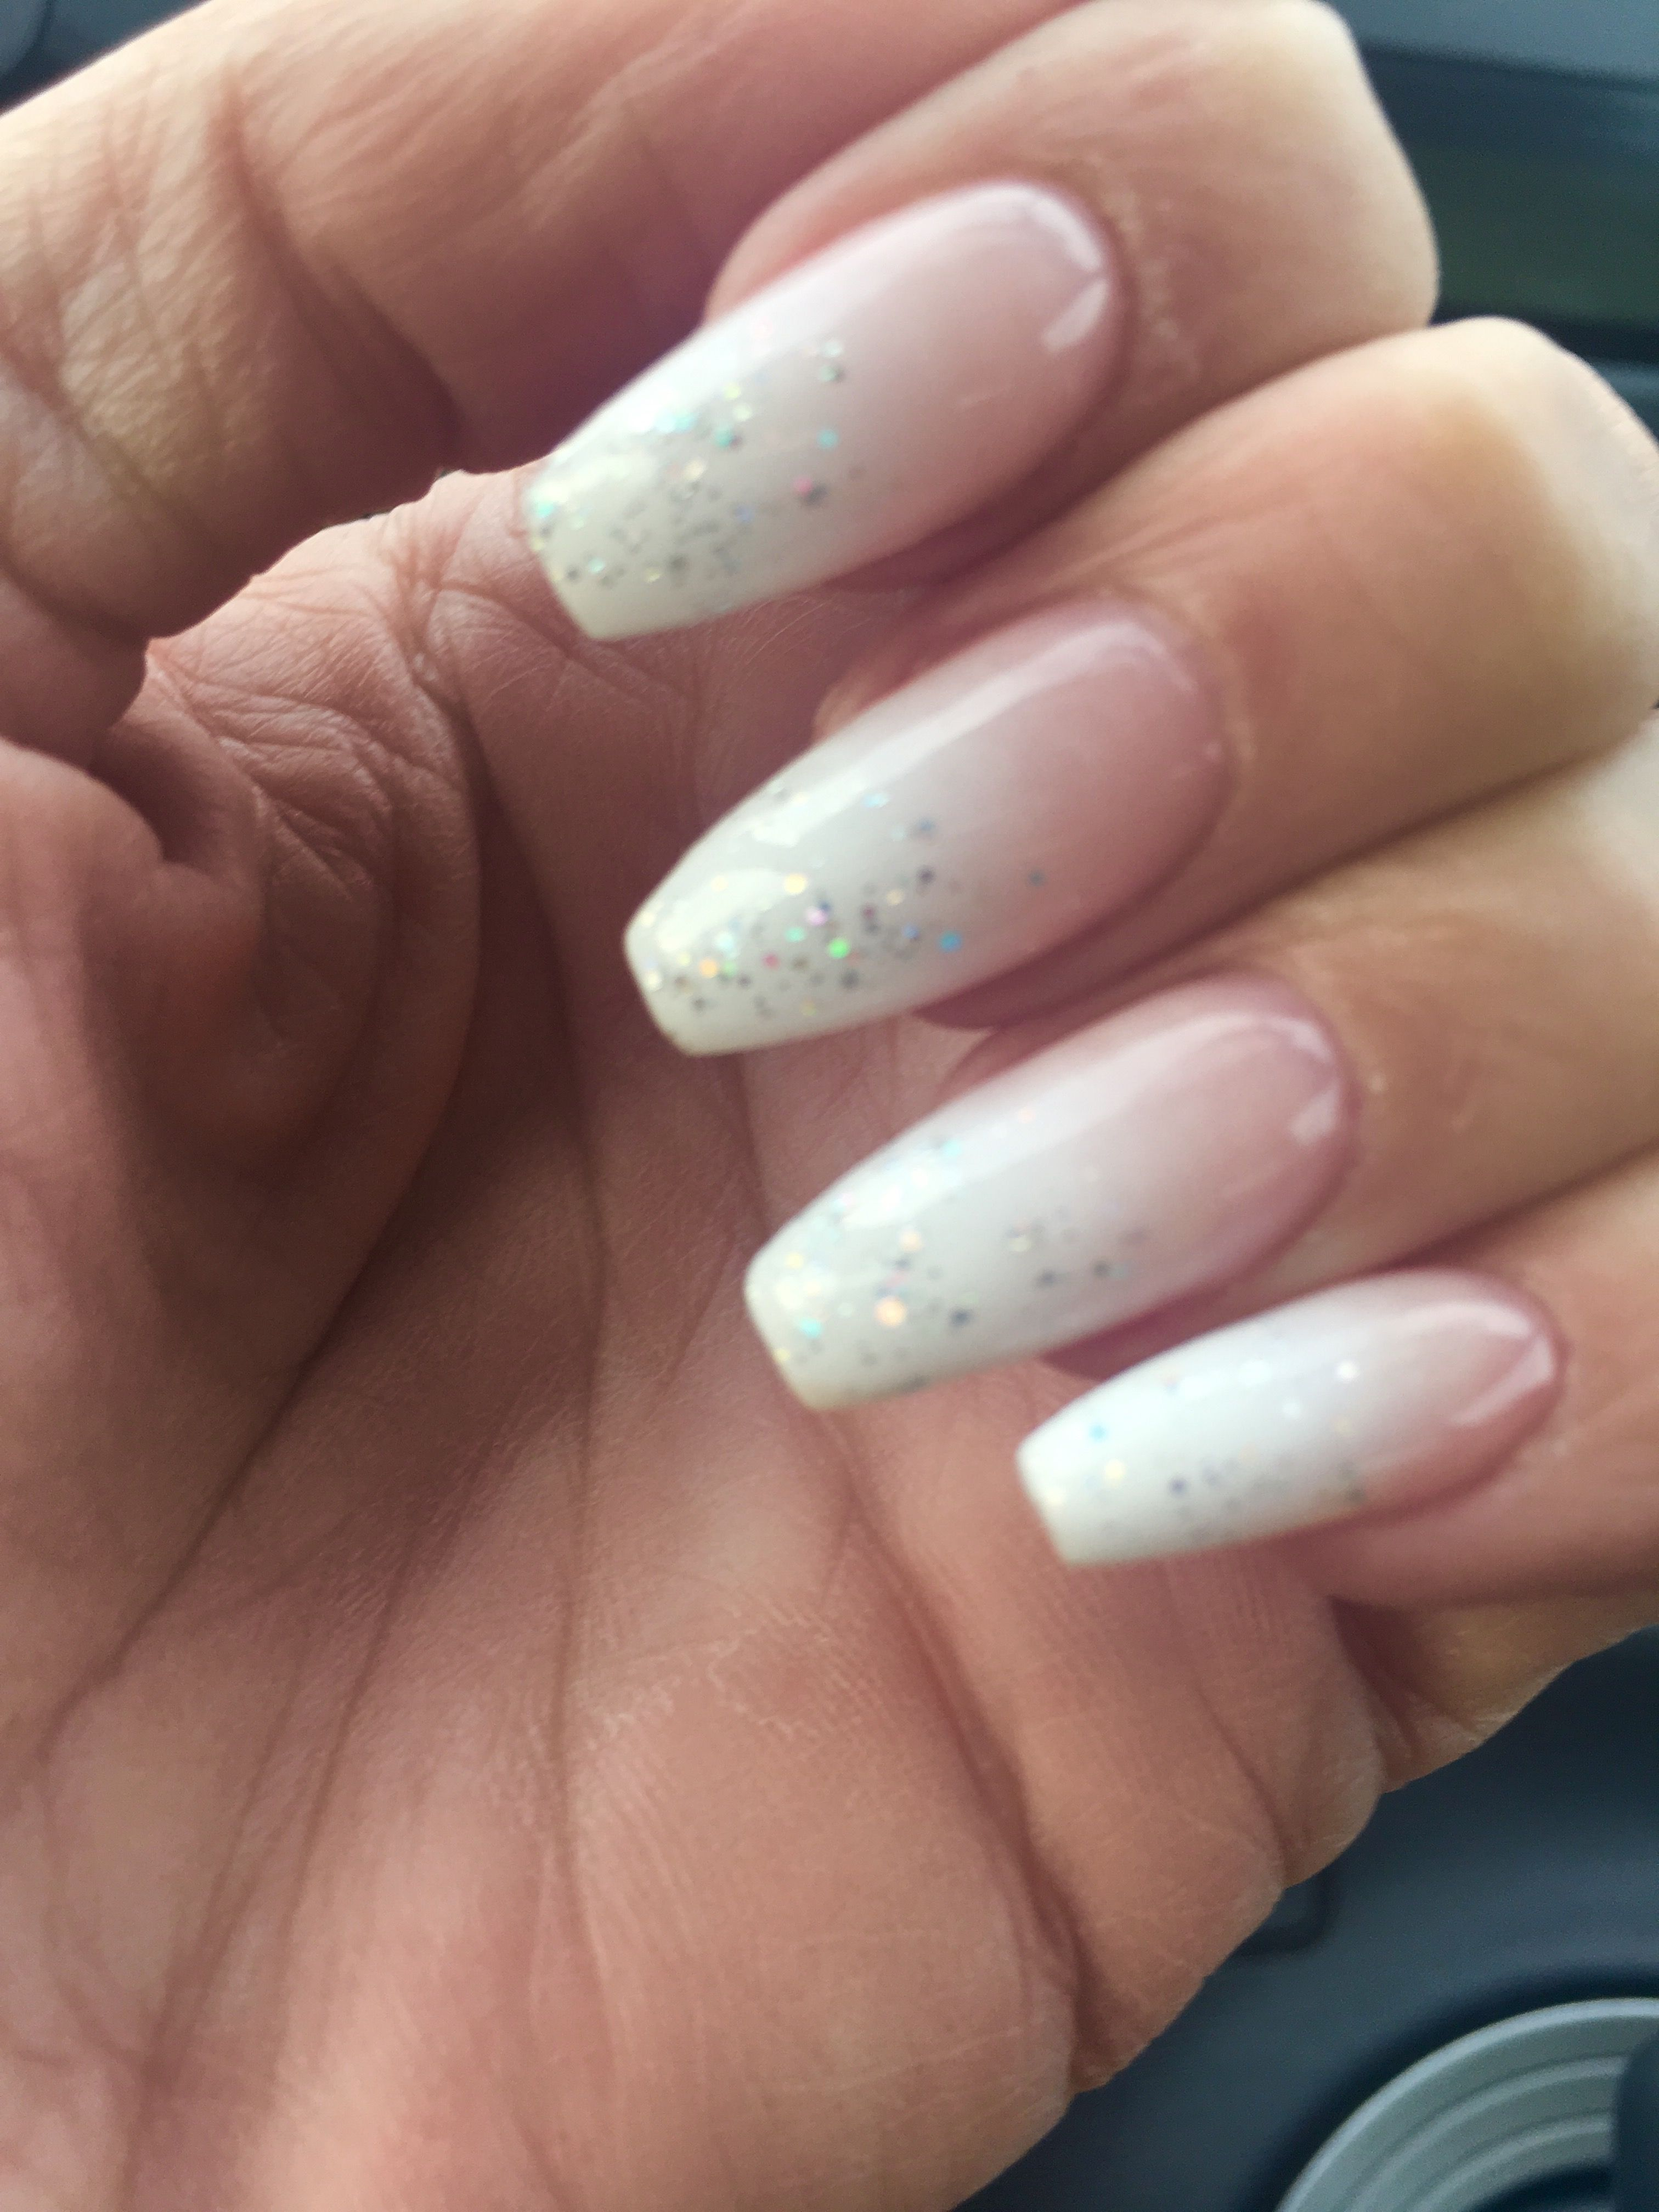 French Ombré coffin nails with a hint of sparkle✨✨ | Nails ...